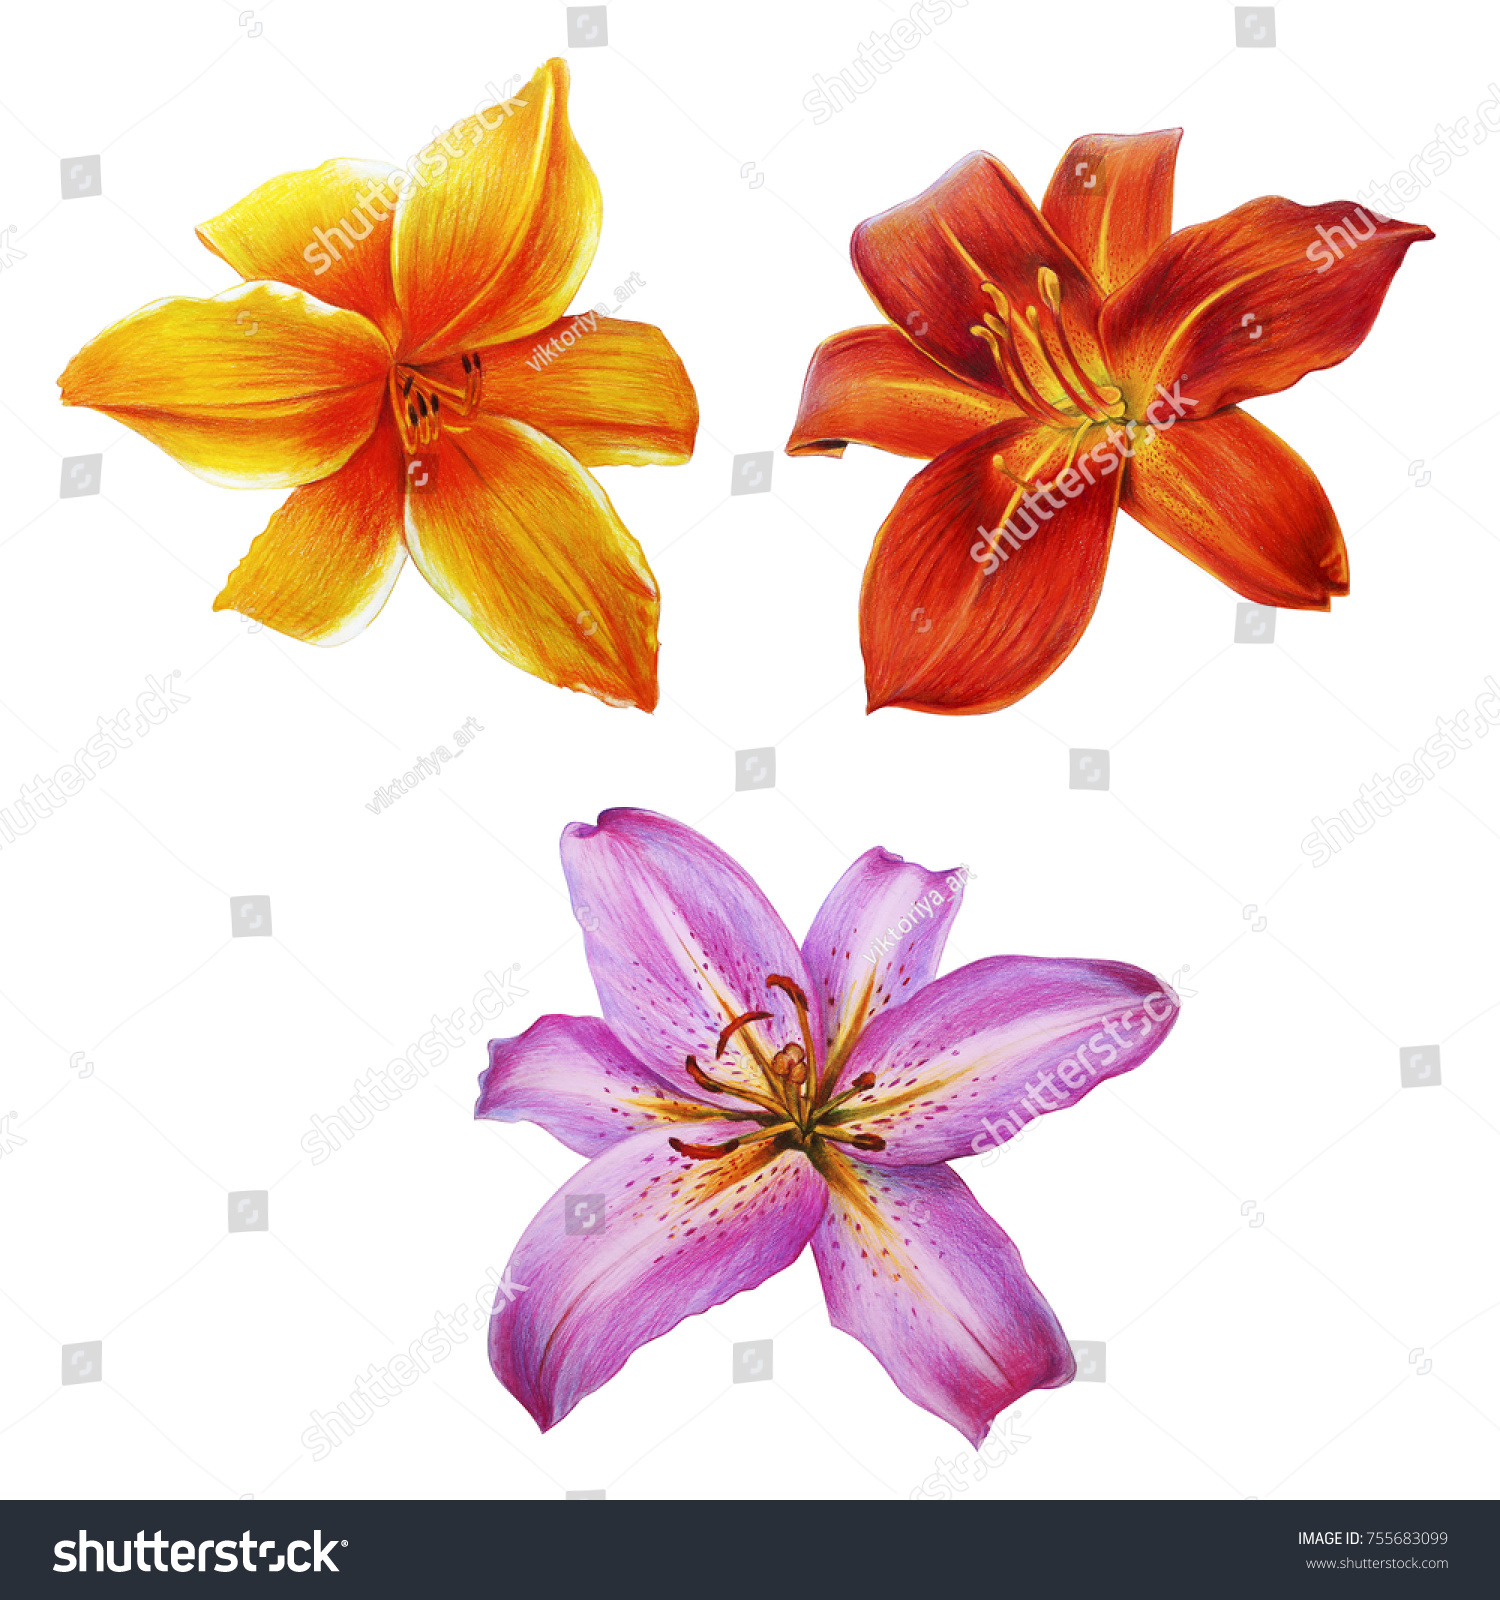 Lilies Different Colors Stock Illustration 755683099 Shutterstock